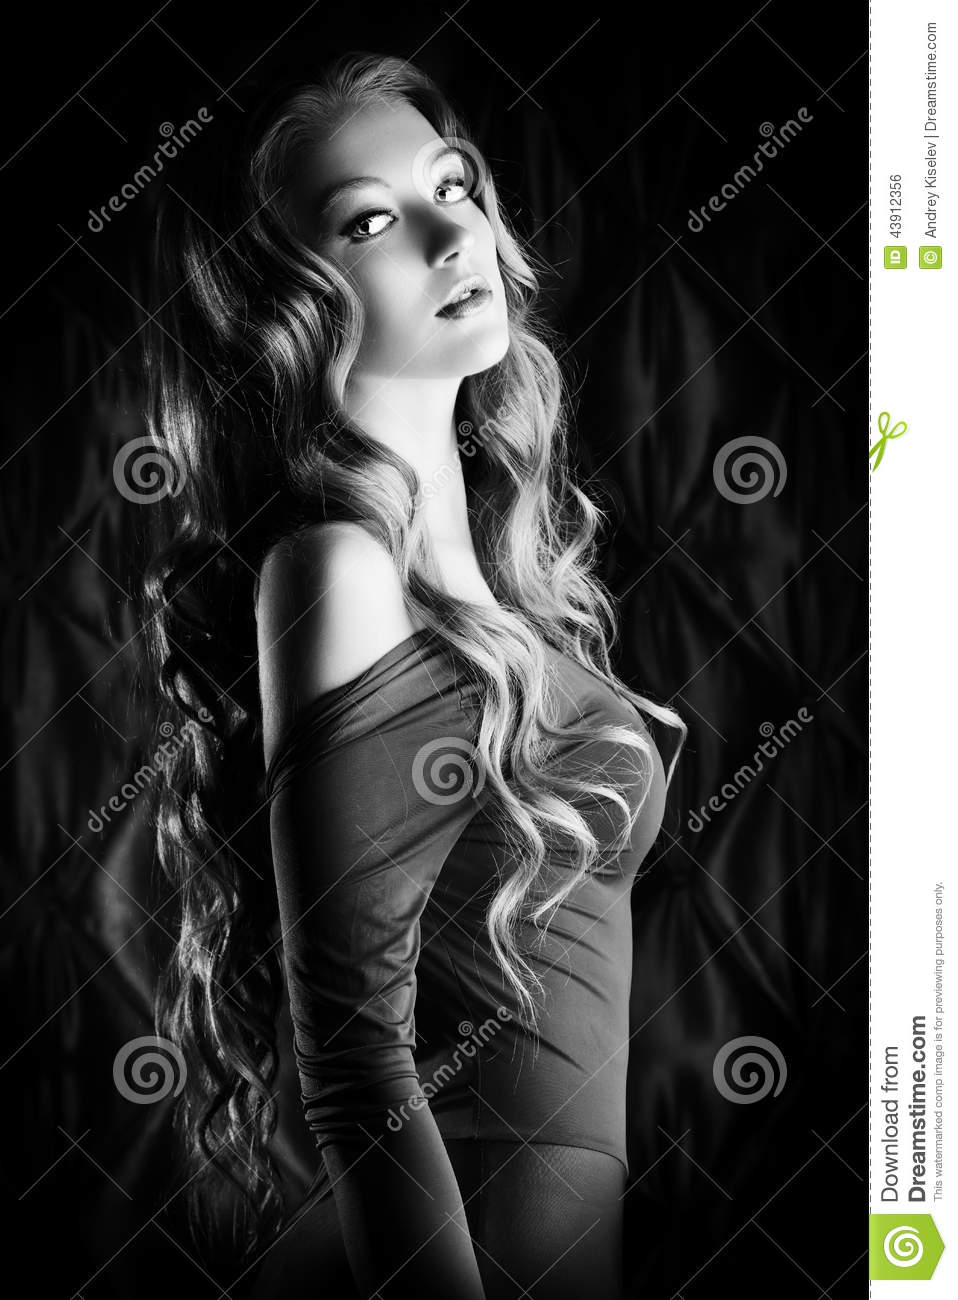 caecea8d0f03 Vogue lady stock photo. Image of coiffure